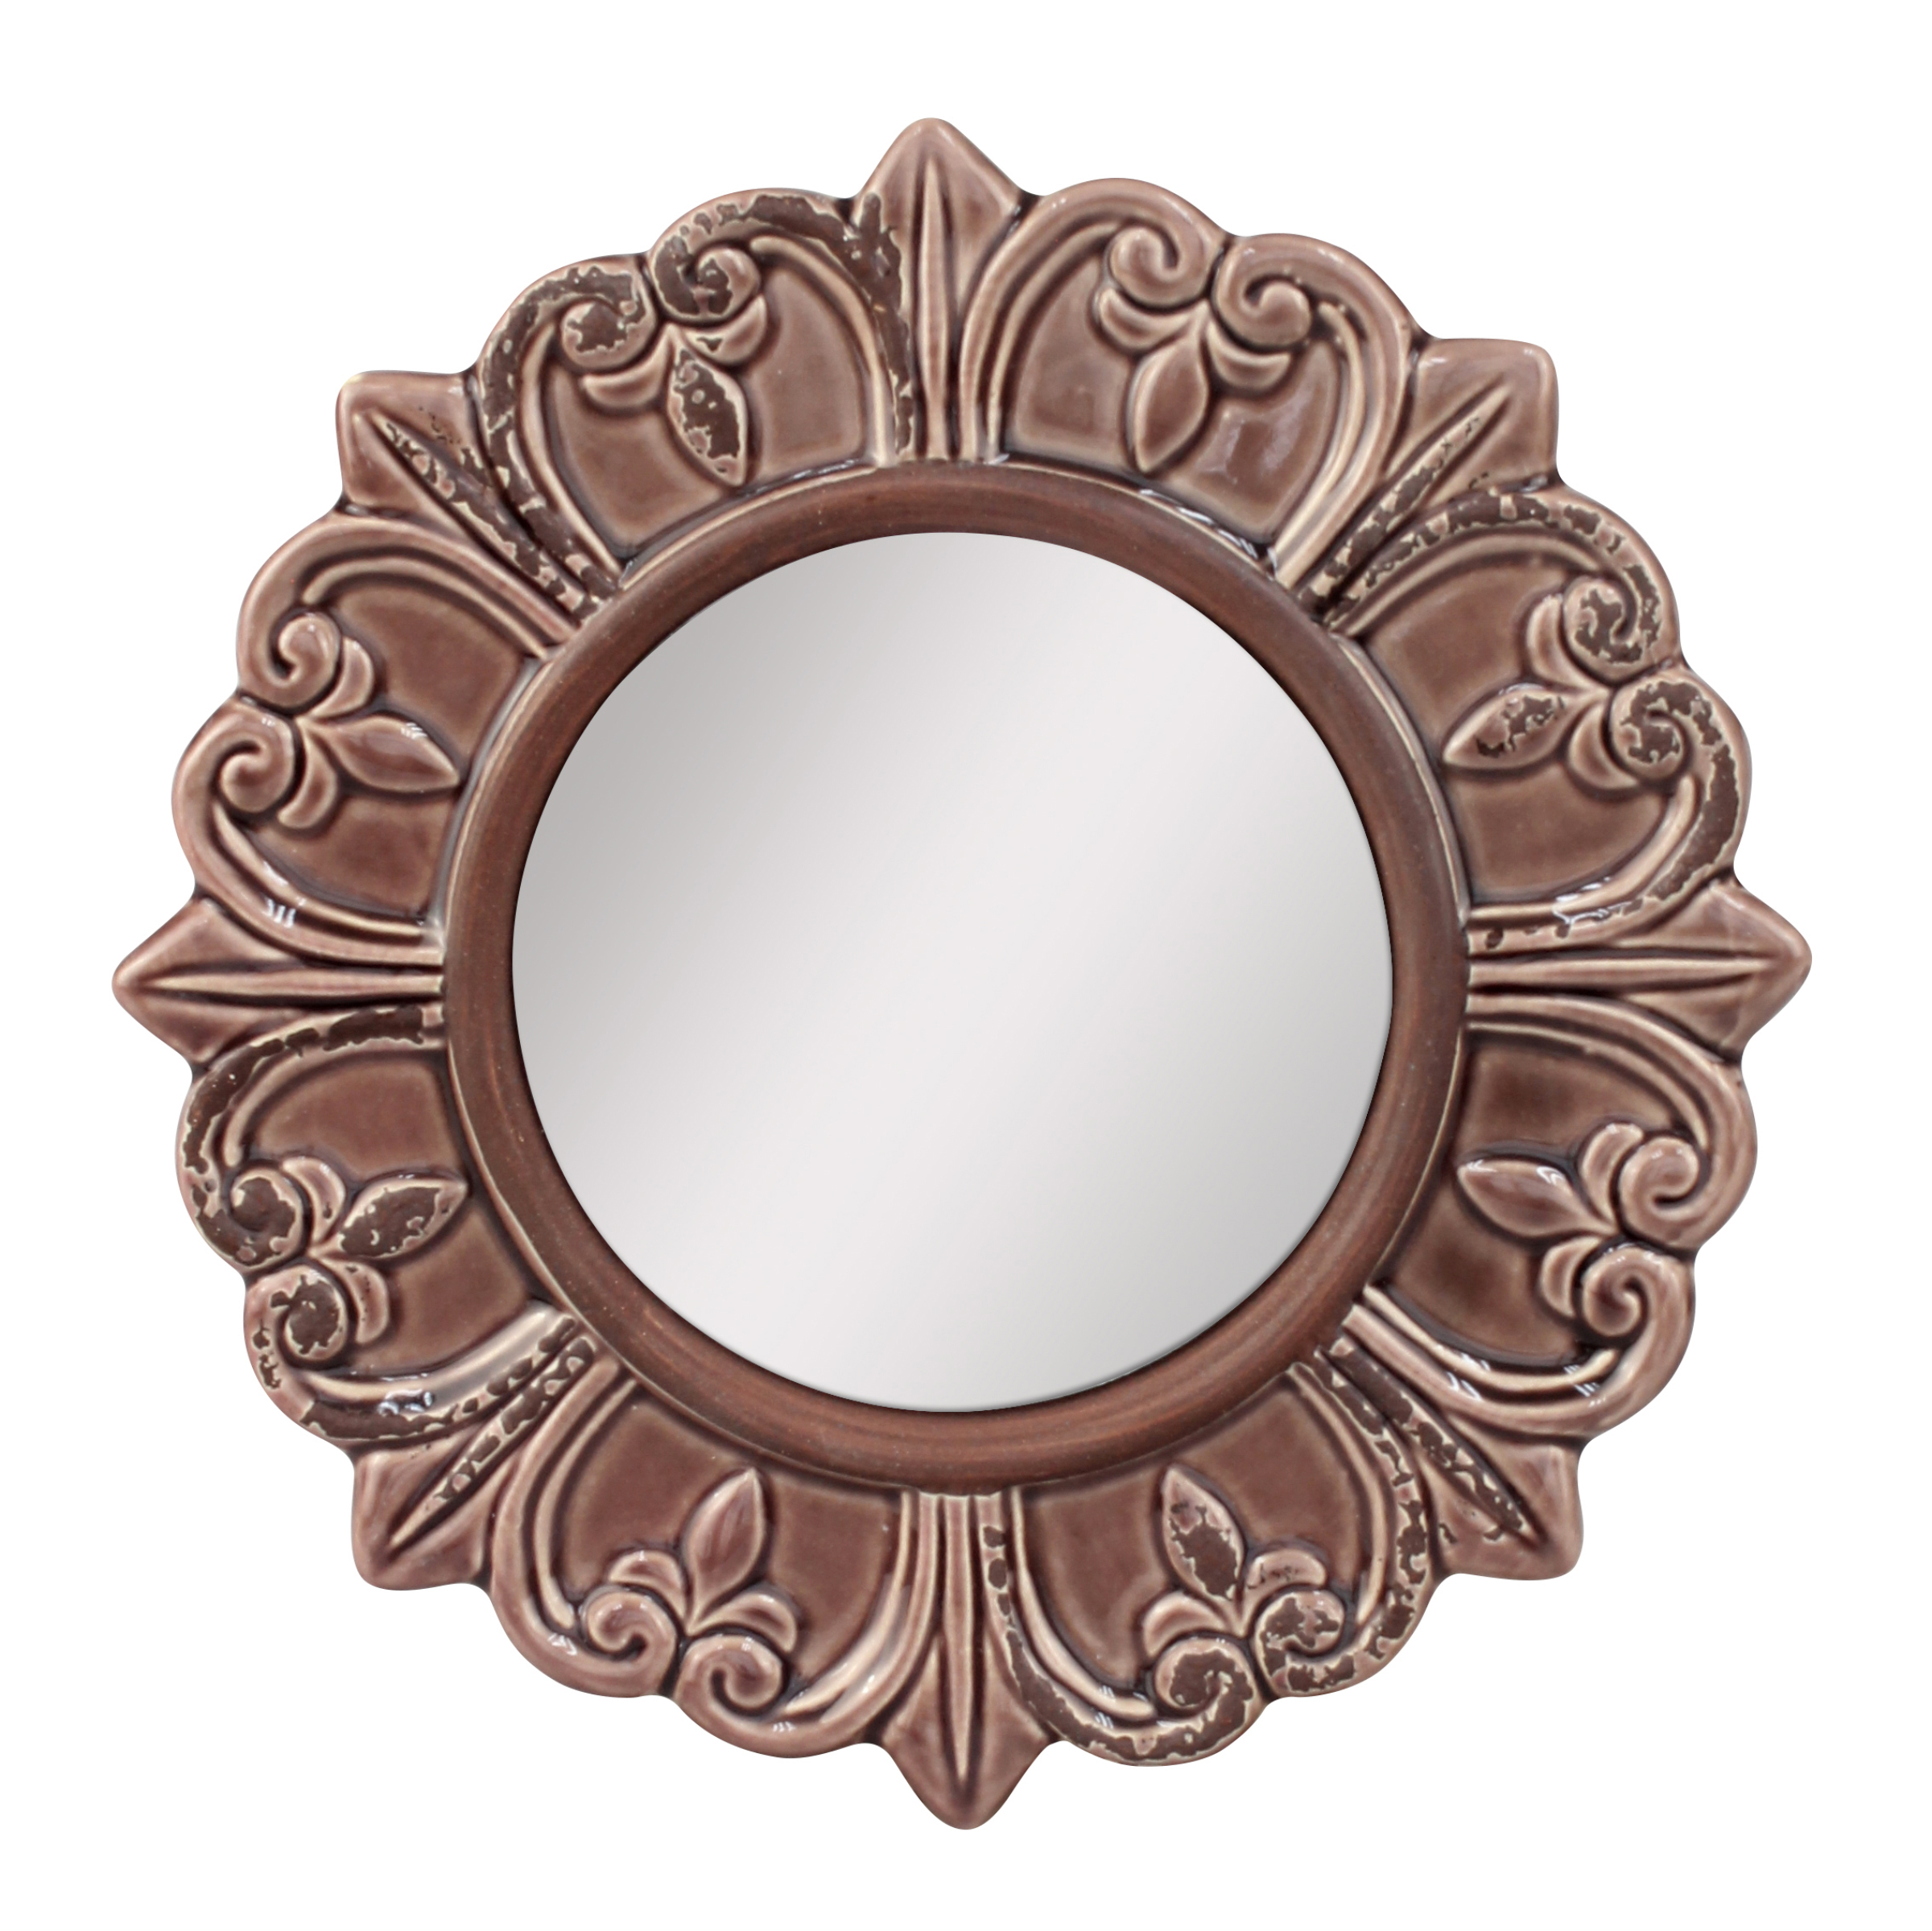 Worn Deep Taupe Ceramic Distressed Wall Mirror